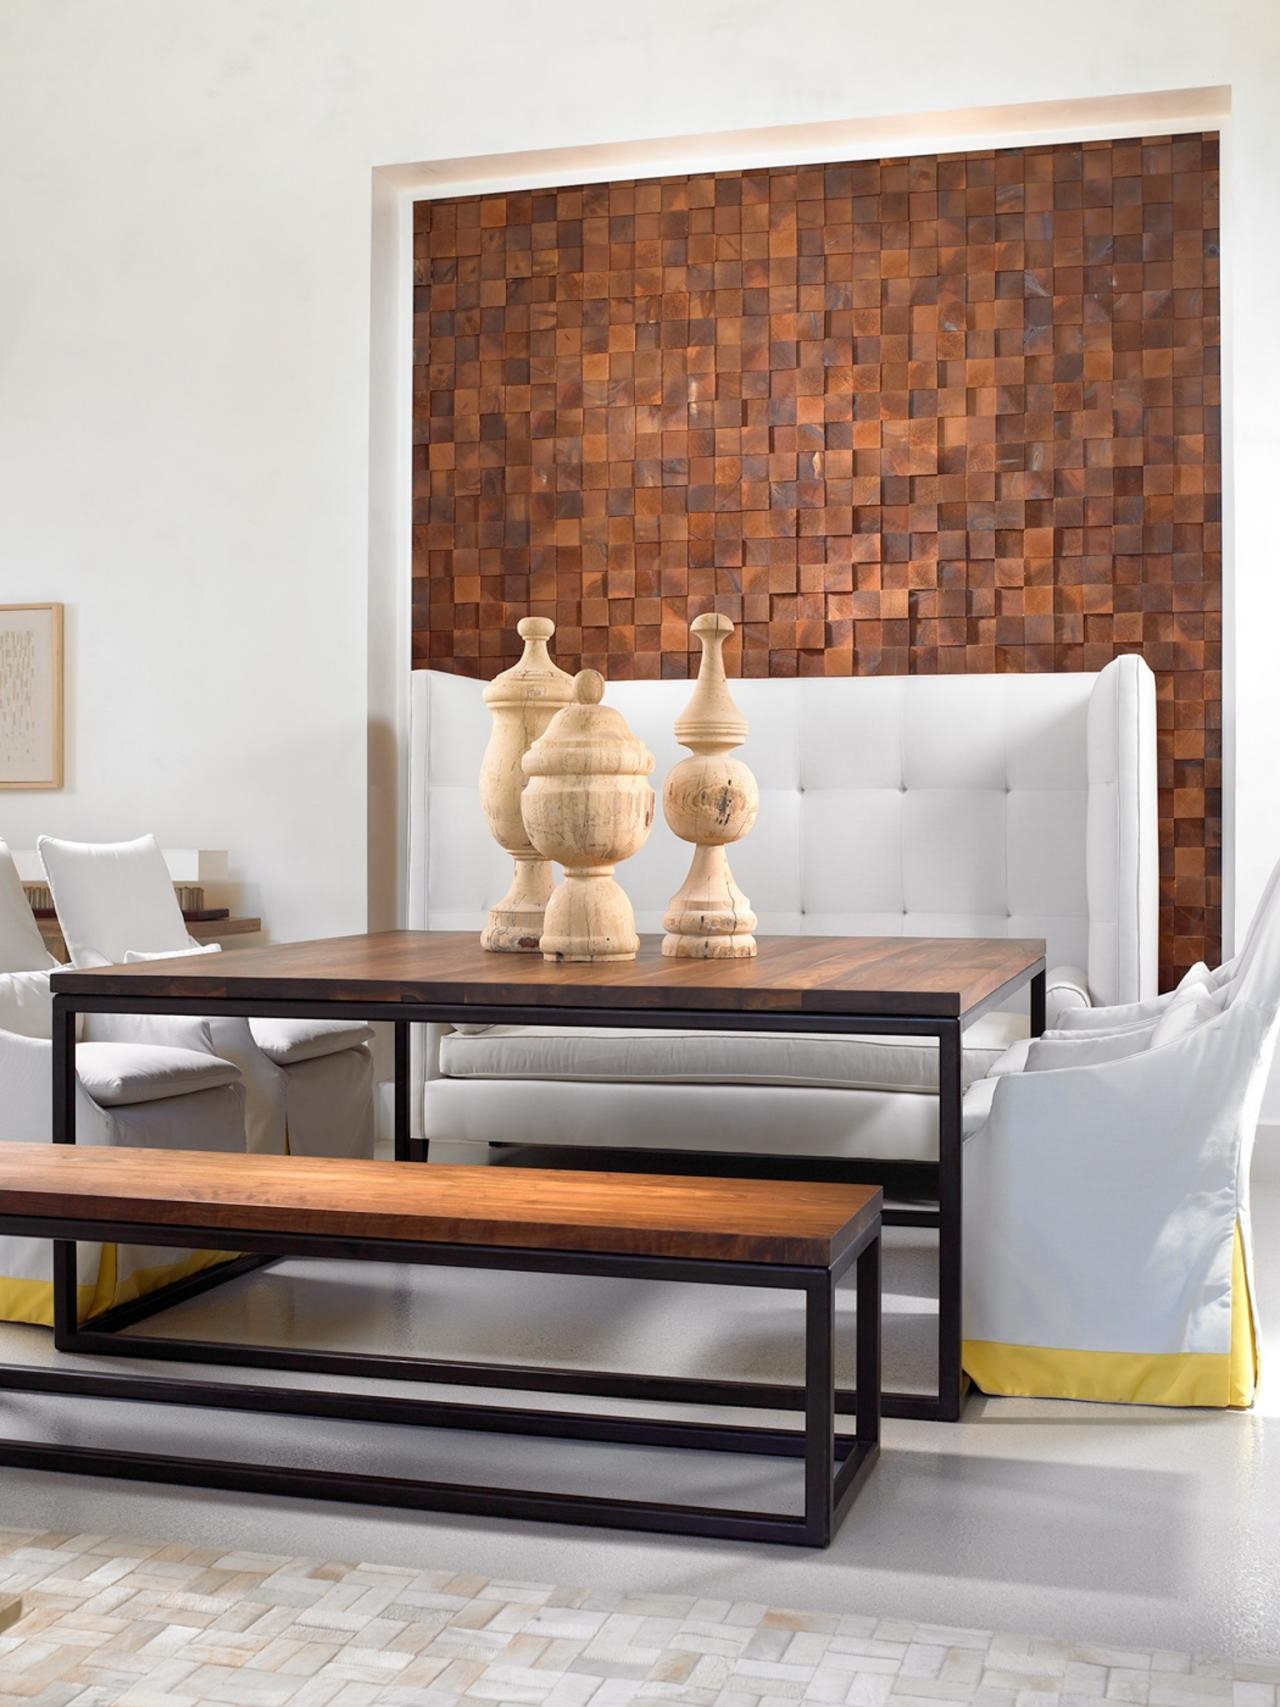 Remarkable Ideas For Wood Accent Wall Features Brown Color Wood In Most Recent Wooden Wall Accents (View 11 of 15)